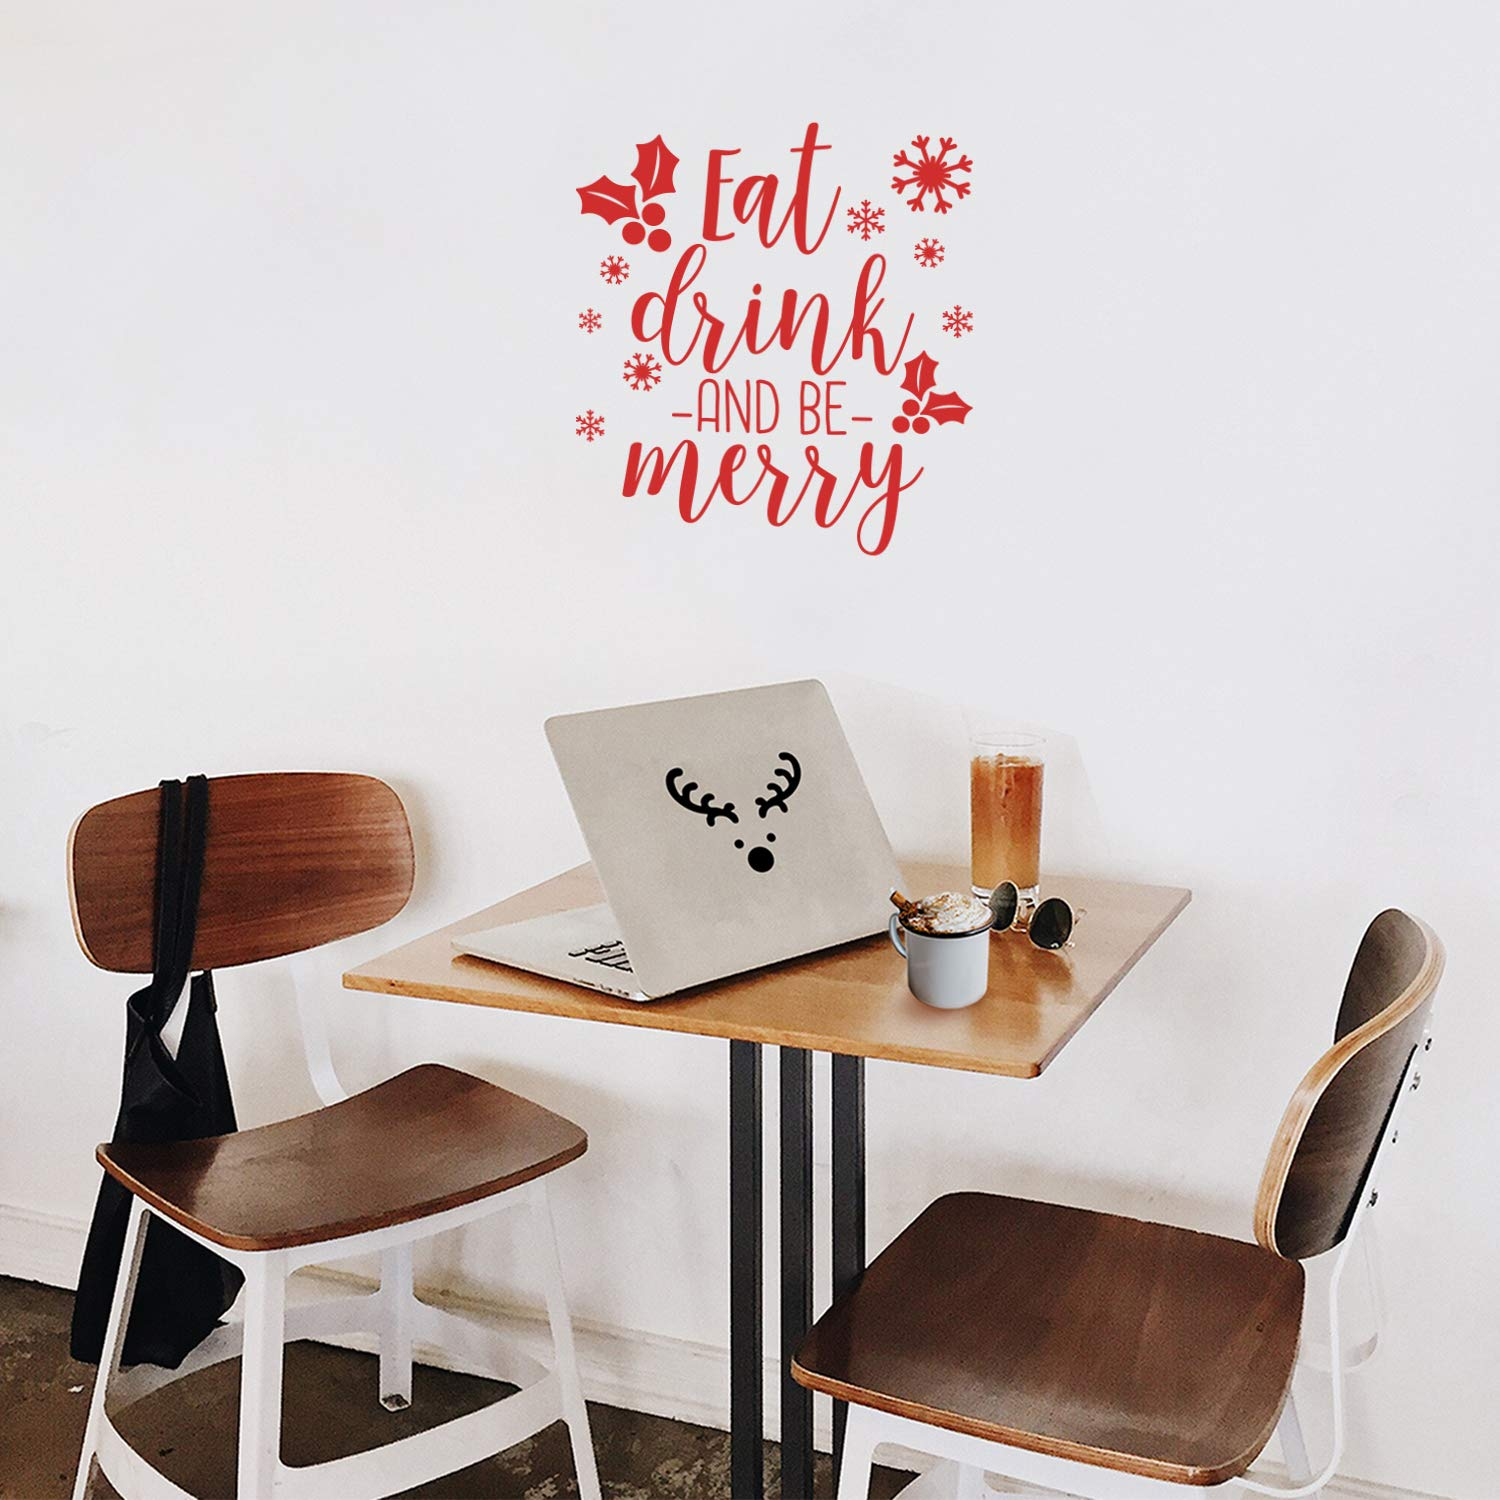 "Vinyl Wall Art Decal - Eat Drink and Be Merry - 18.5"" x 17"" - Trendy Cute Inspirational Christmas Holiday Season Quote Sticker for Living Room Dining Room Entry Door Storefront Shop Decor (Red)"